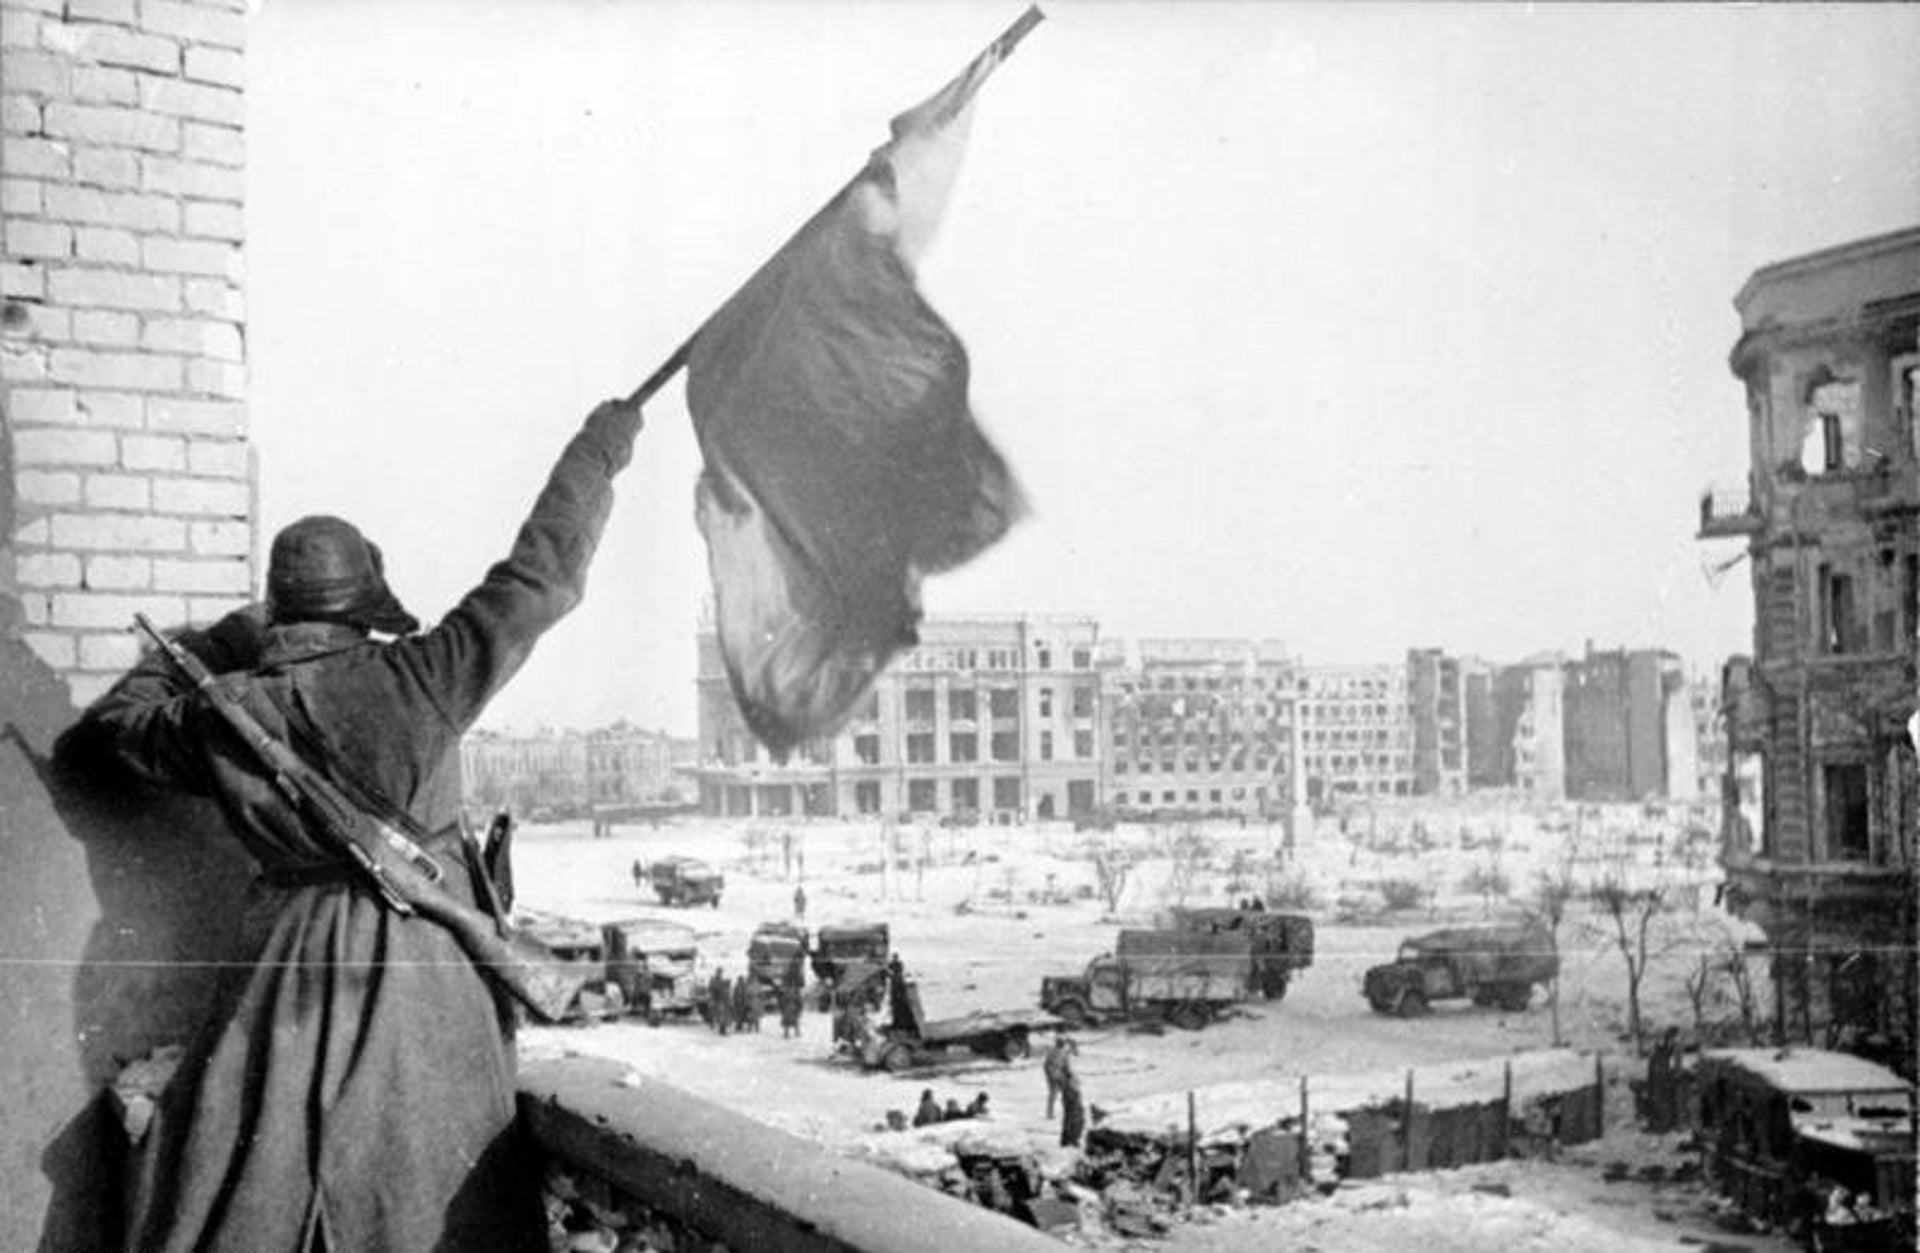 A Soviet soldier waving the Red Banner over the central plaza of Stalingrad in 1943.